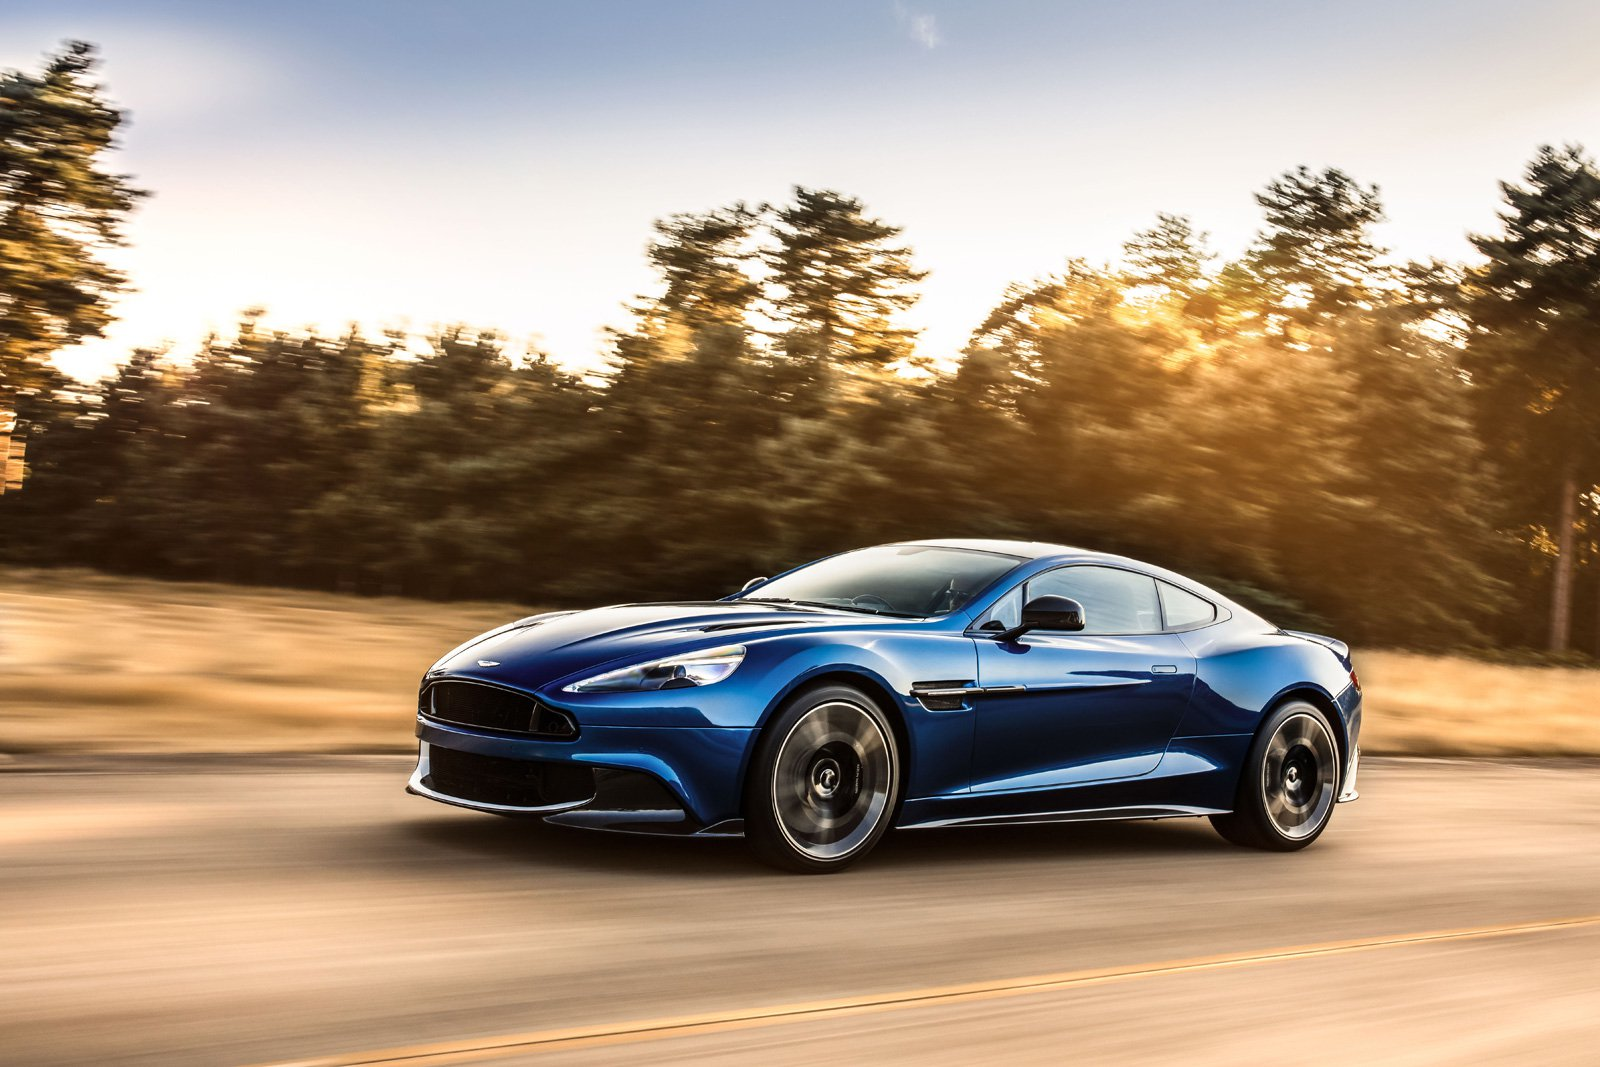 Aston Martin's Stunning Coupe is now Even Better